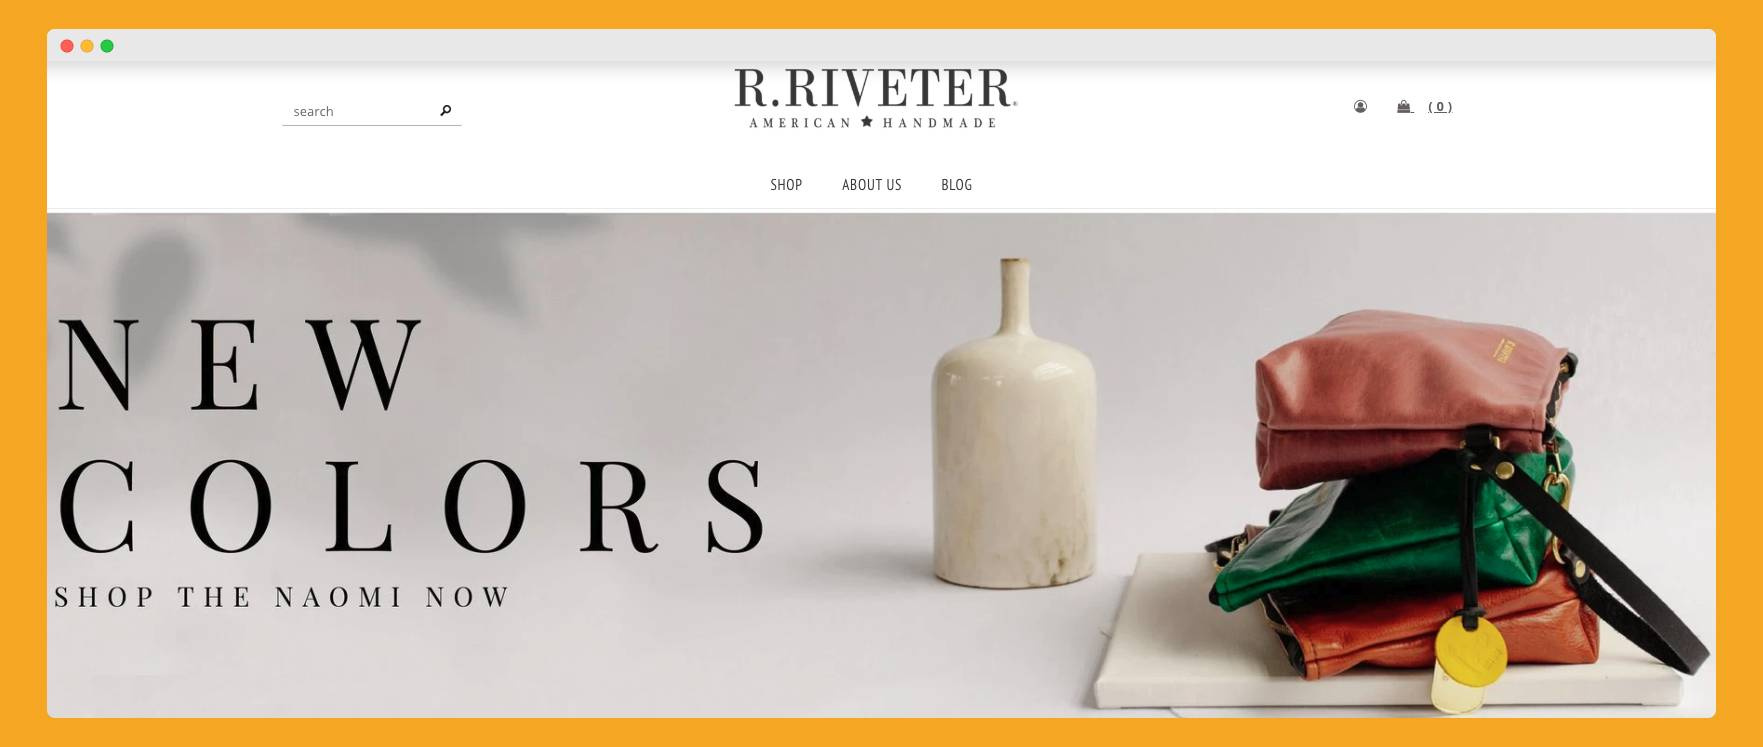 istoselides-online-agores_riveter